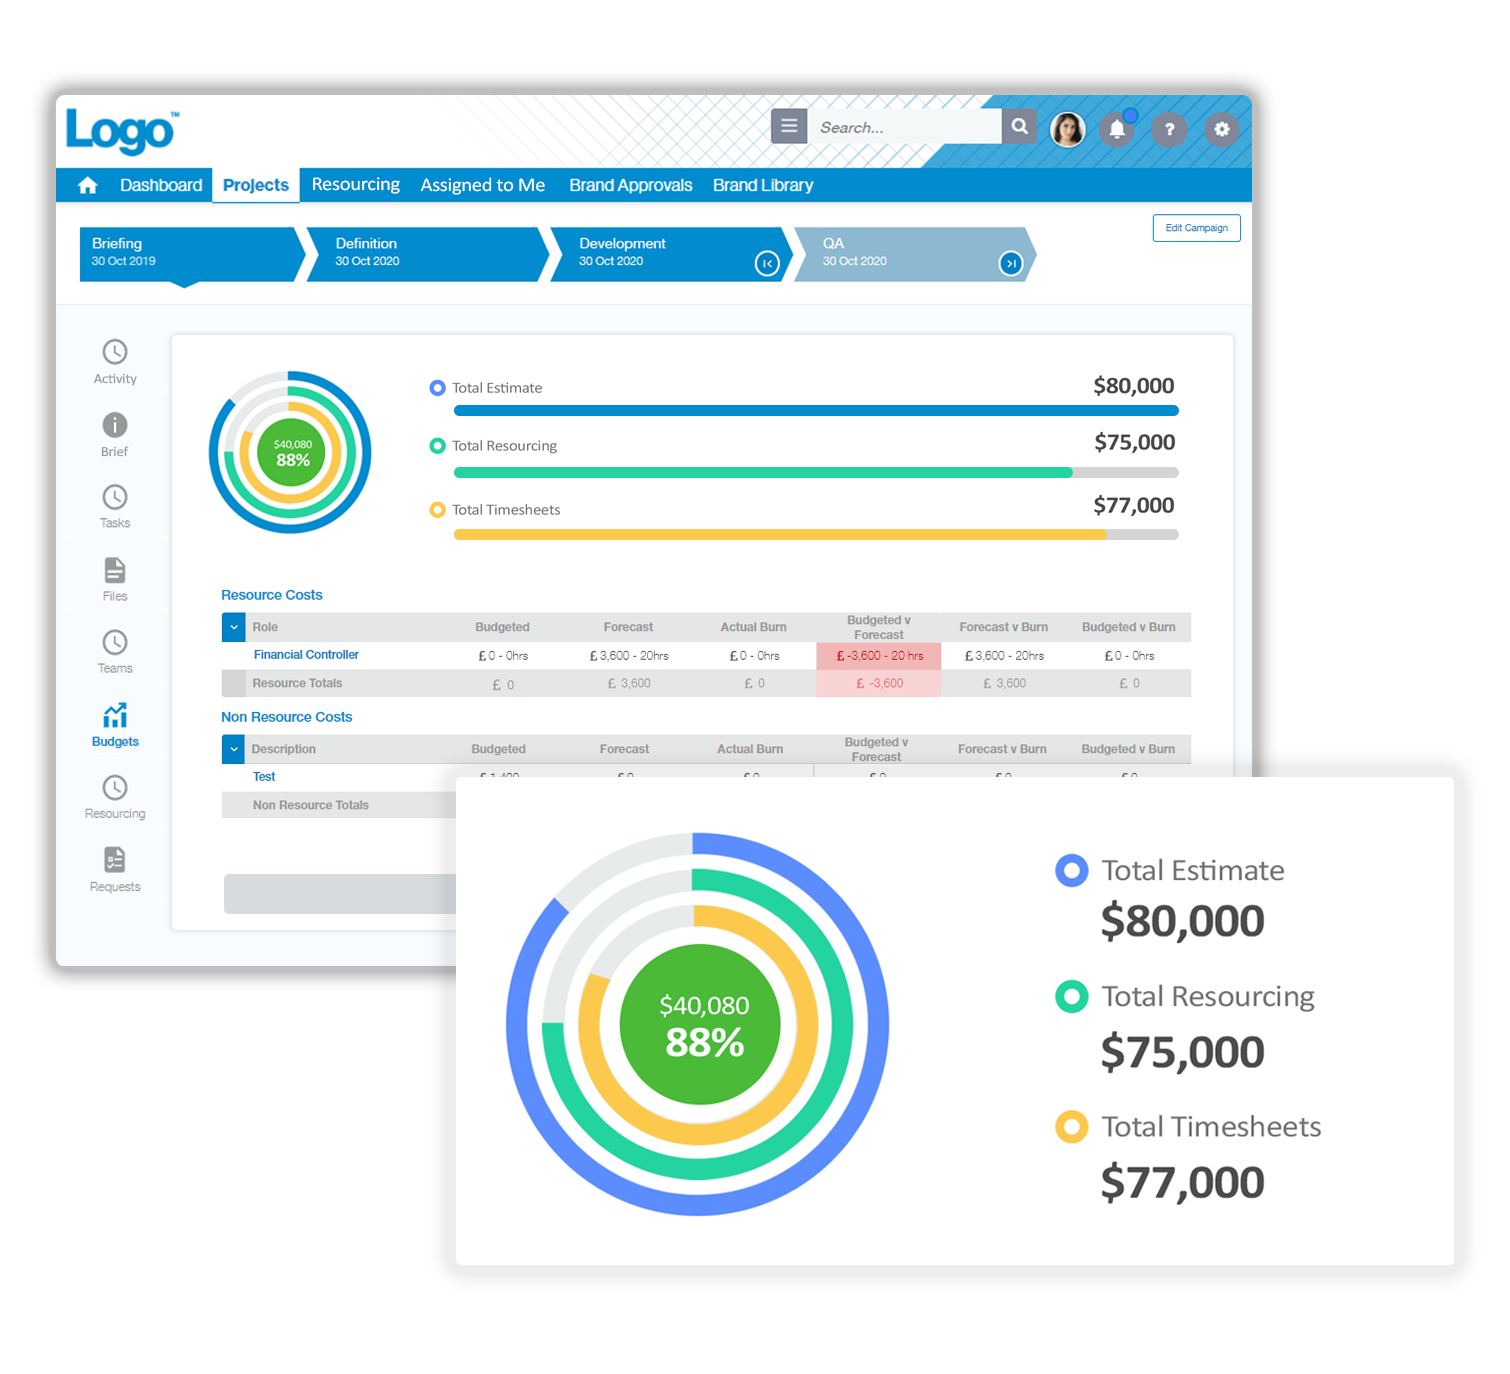 Screendragon Software - Budget Management - Compare and track estimates and costs of projects in real-time.